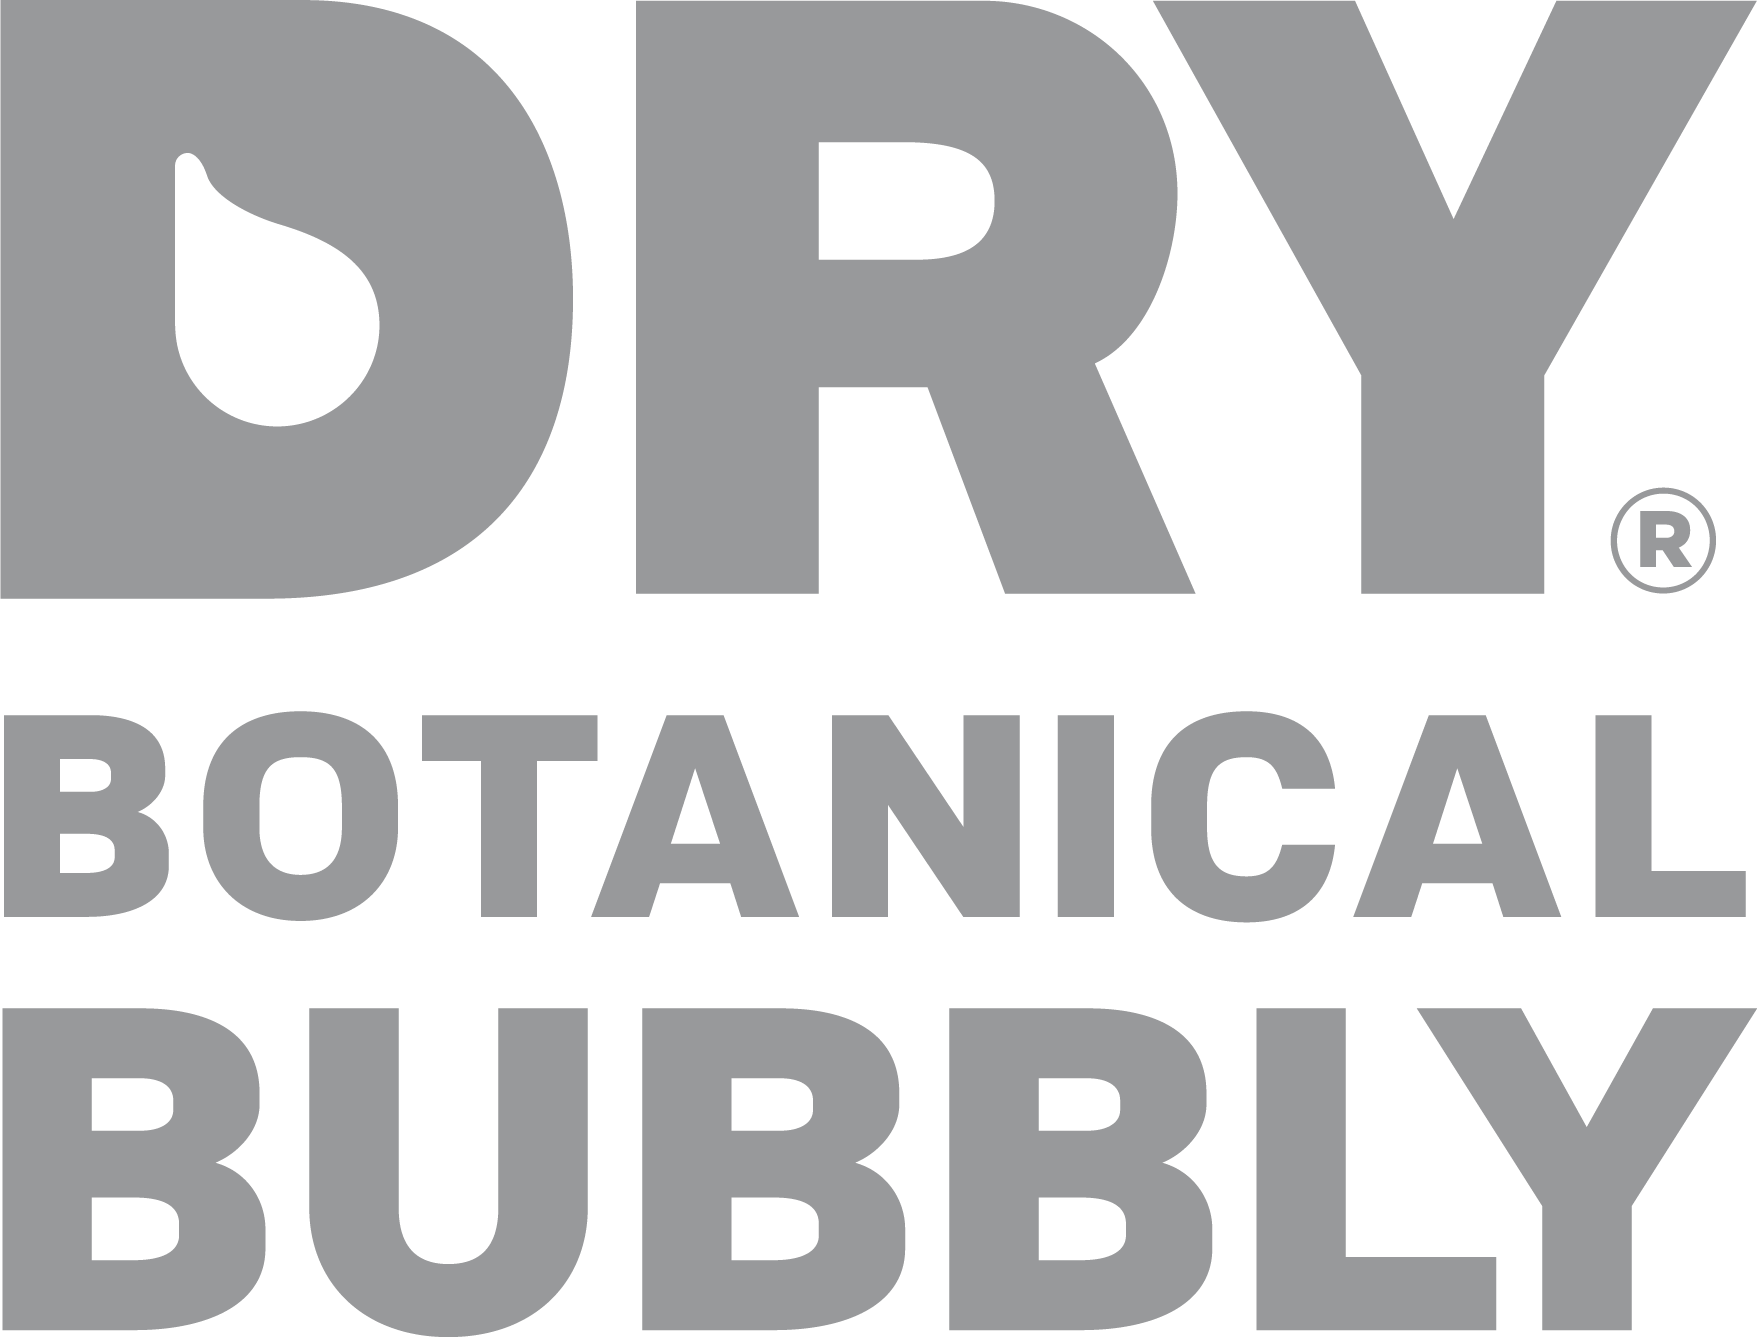 Dry Botanical Bubbly